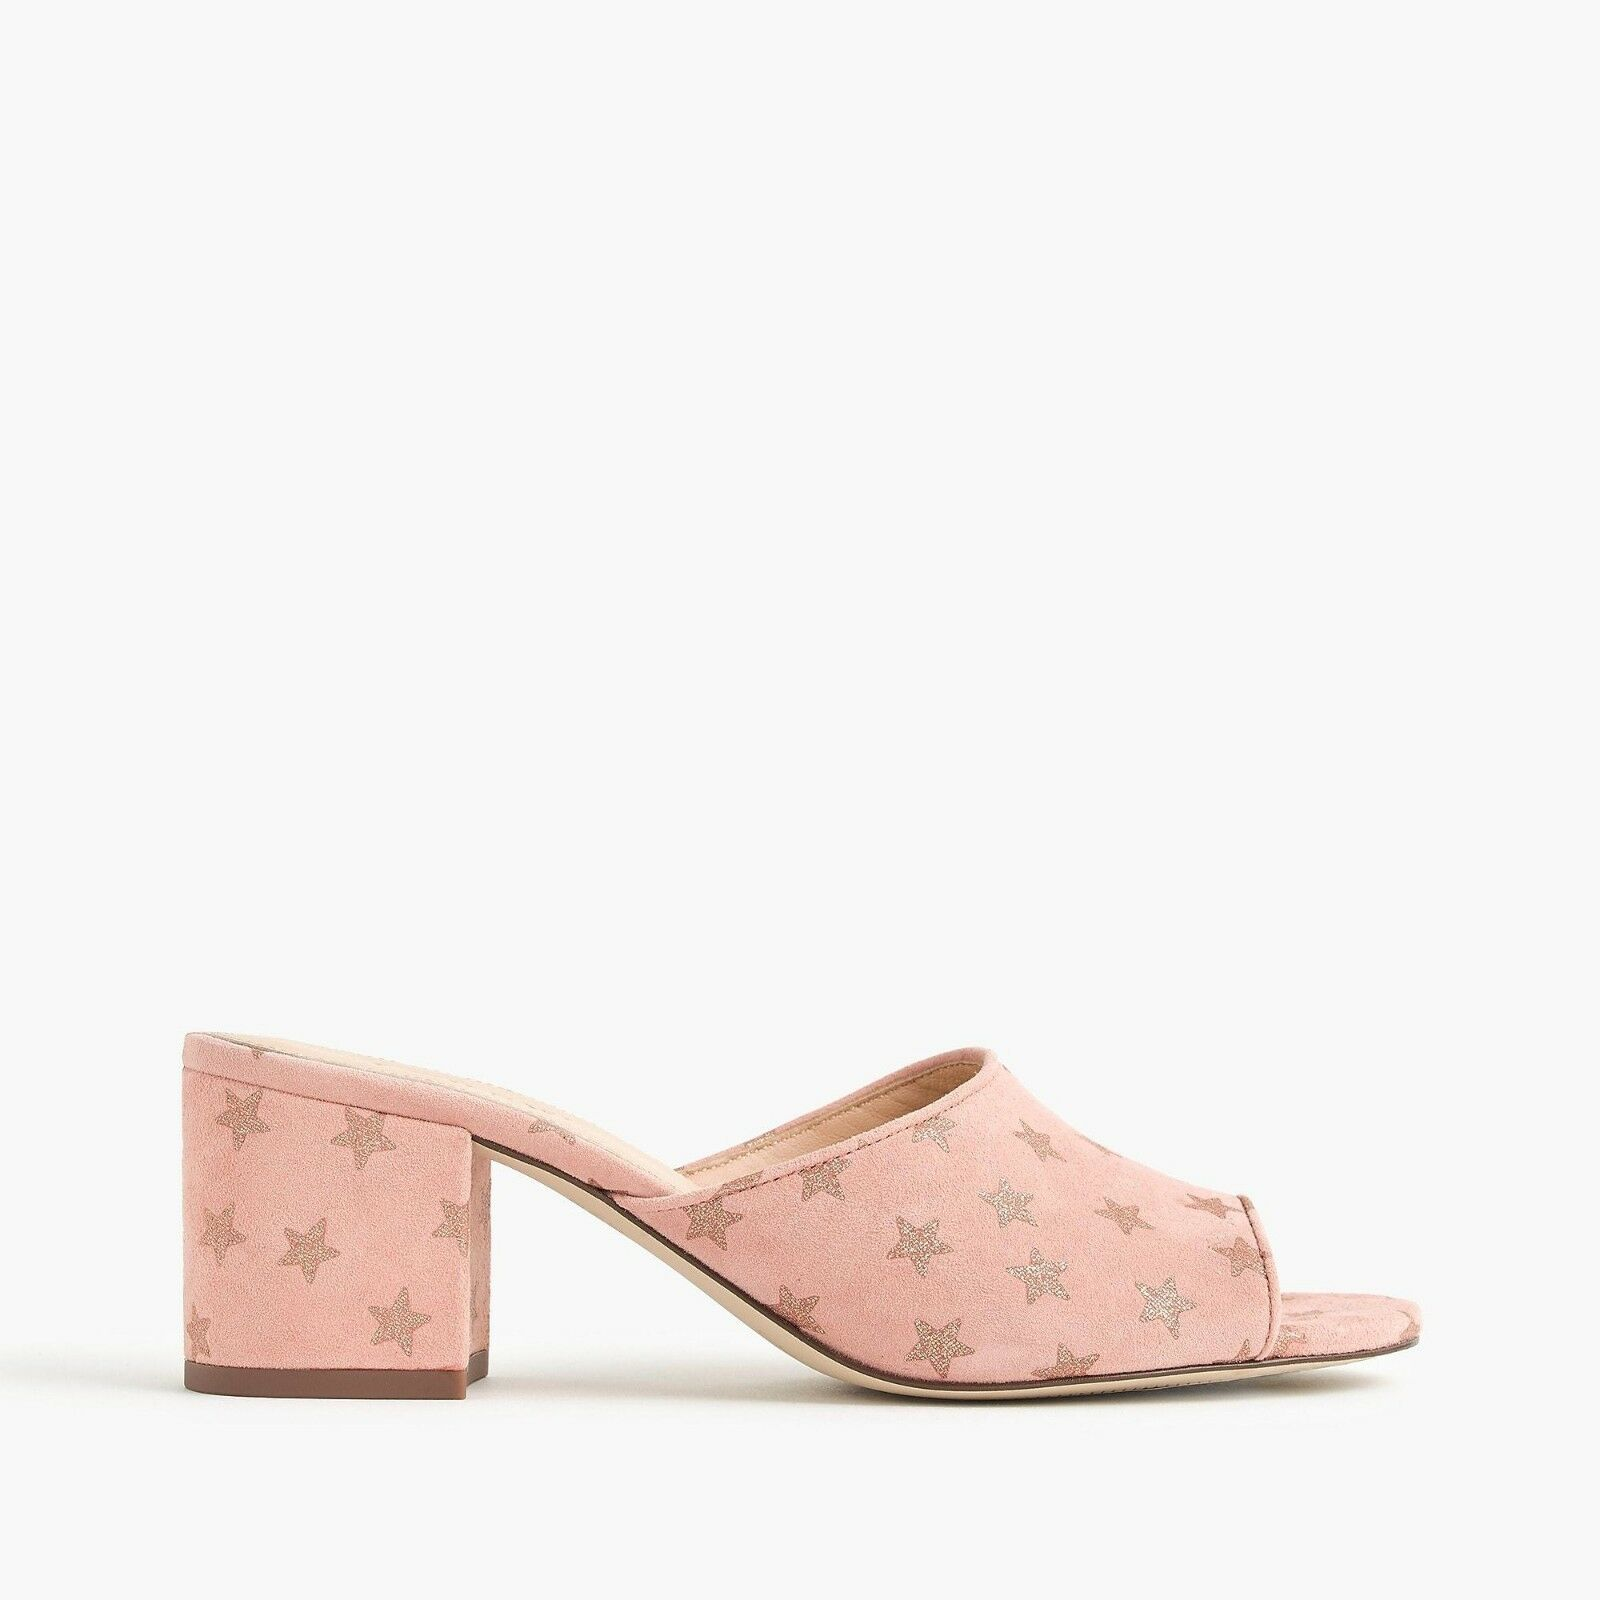 138 NWT J.CREW All-day Mules Block Heel Starry Suede blueSH PINK COPPER Sz 8.5